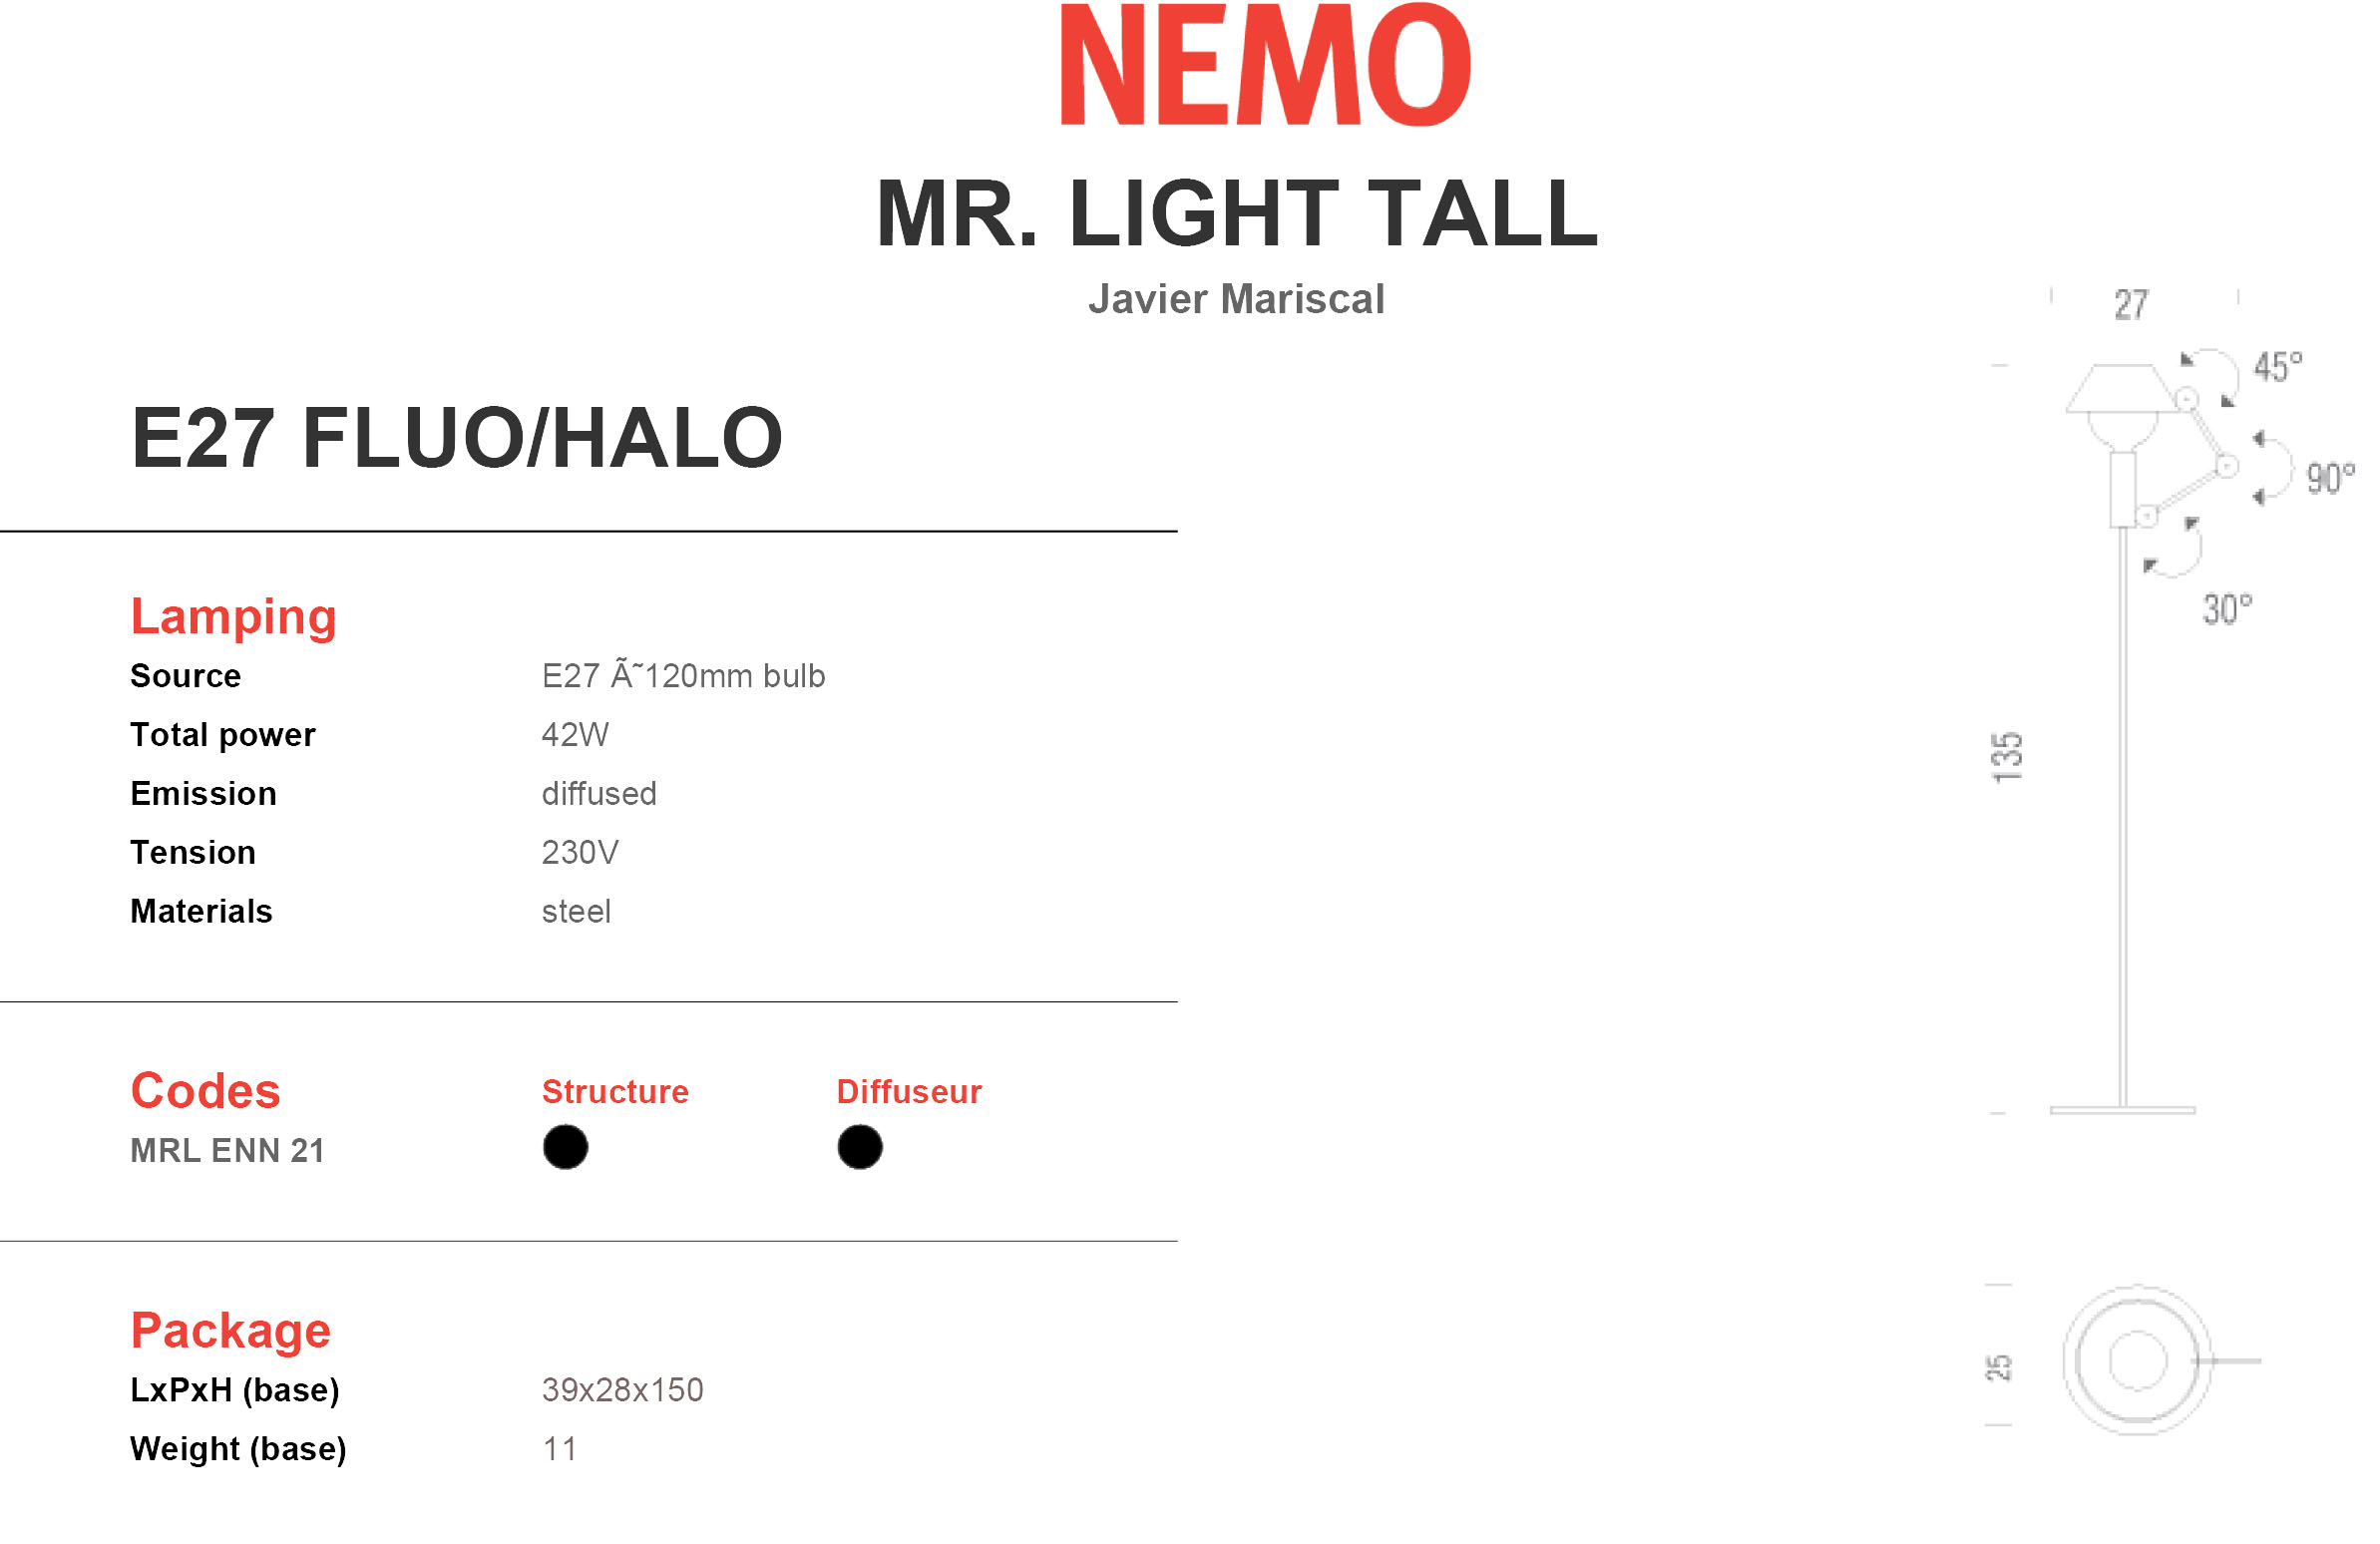 Nemo MR. LIGHT TALL Tech